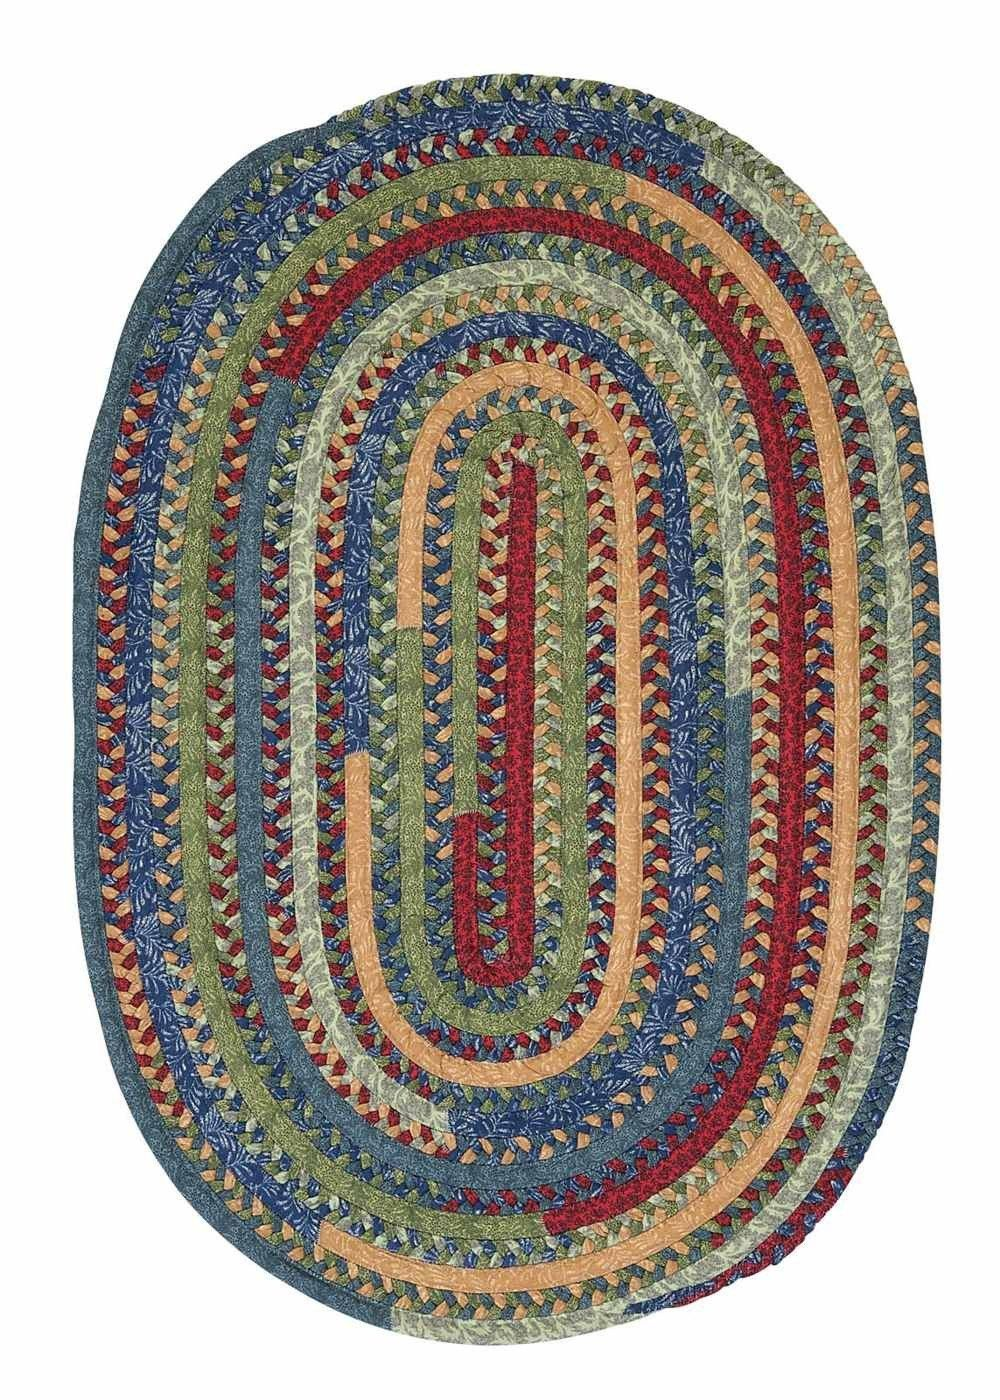 Market Mix Oval Mm03 Sea Gl Braided Rug By Colonial Mills